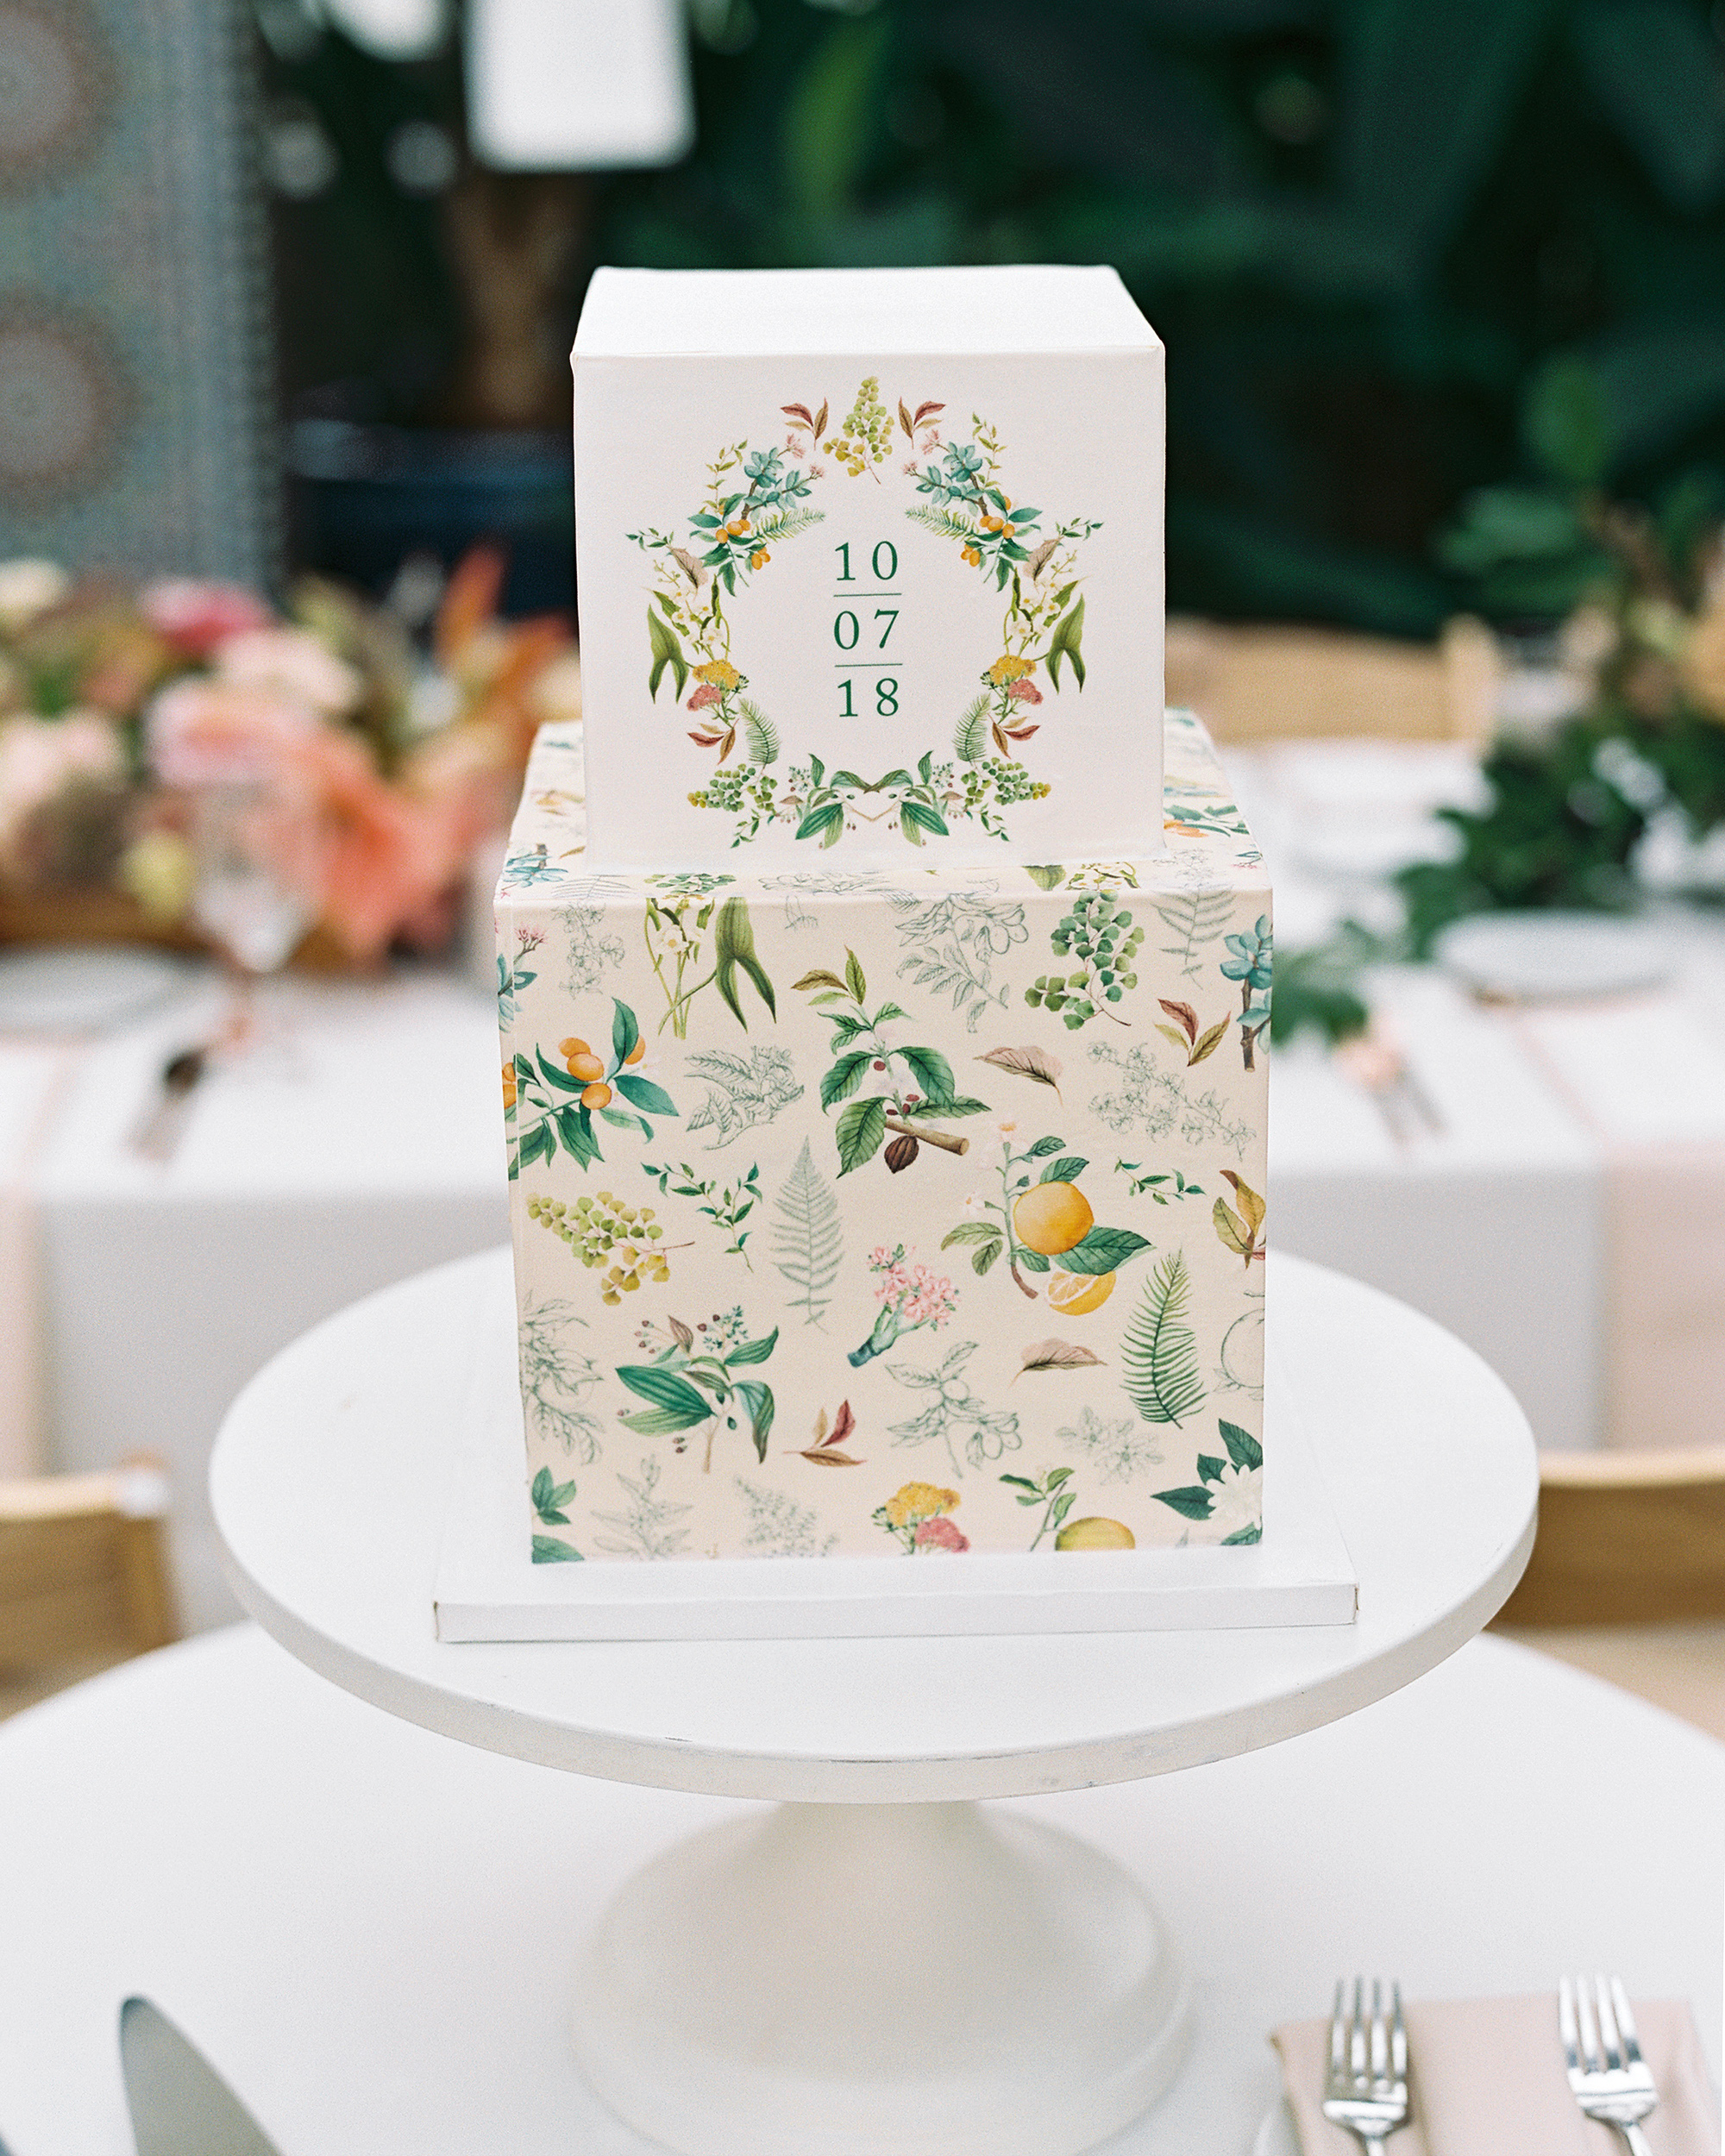 Cube-Shaped Wedding Cakes for Your Contemporary Dessert Table